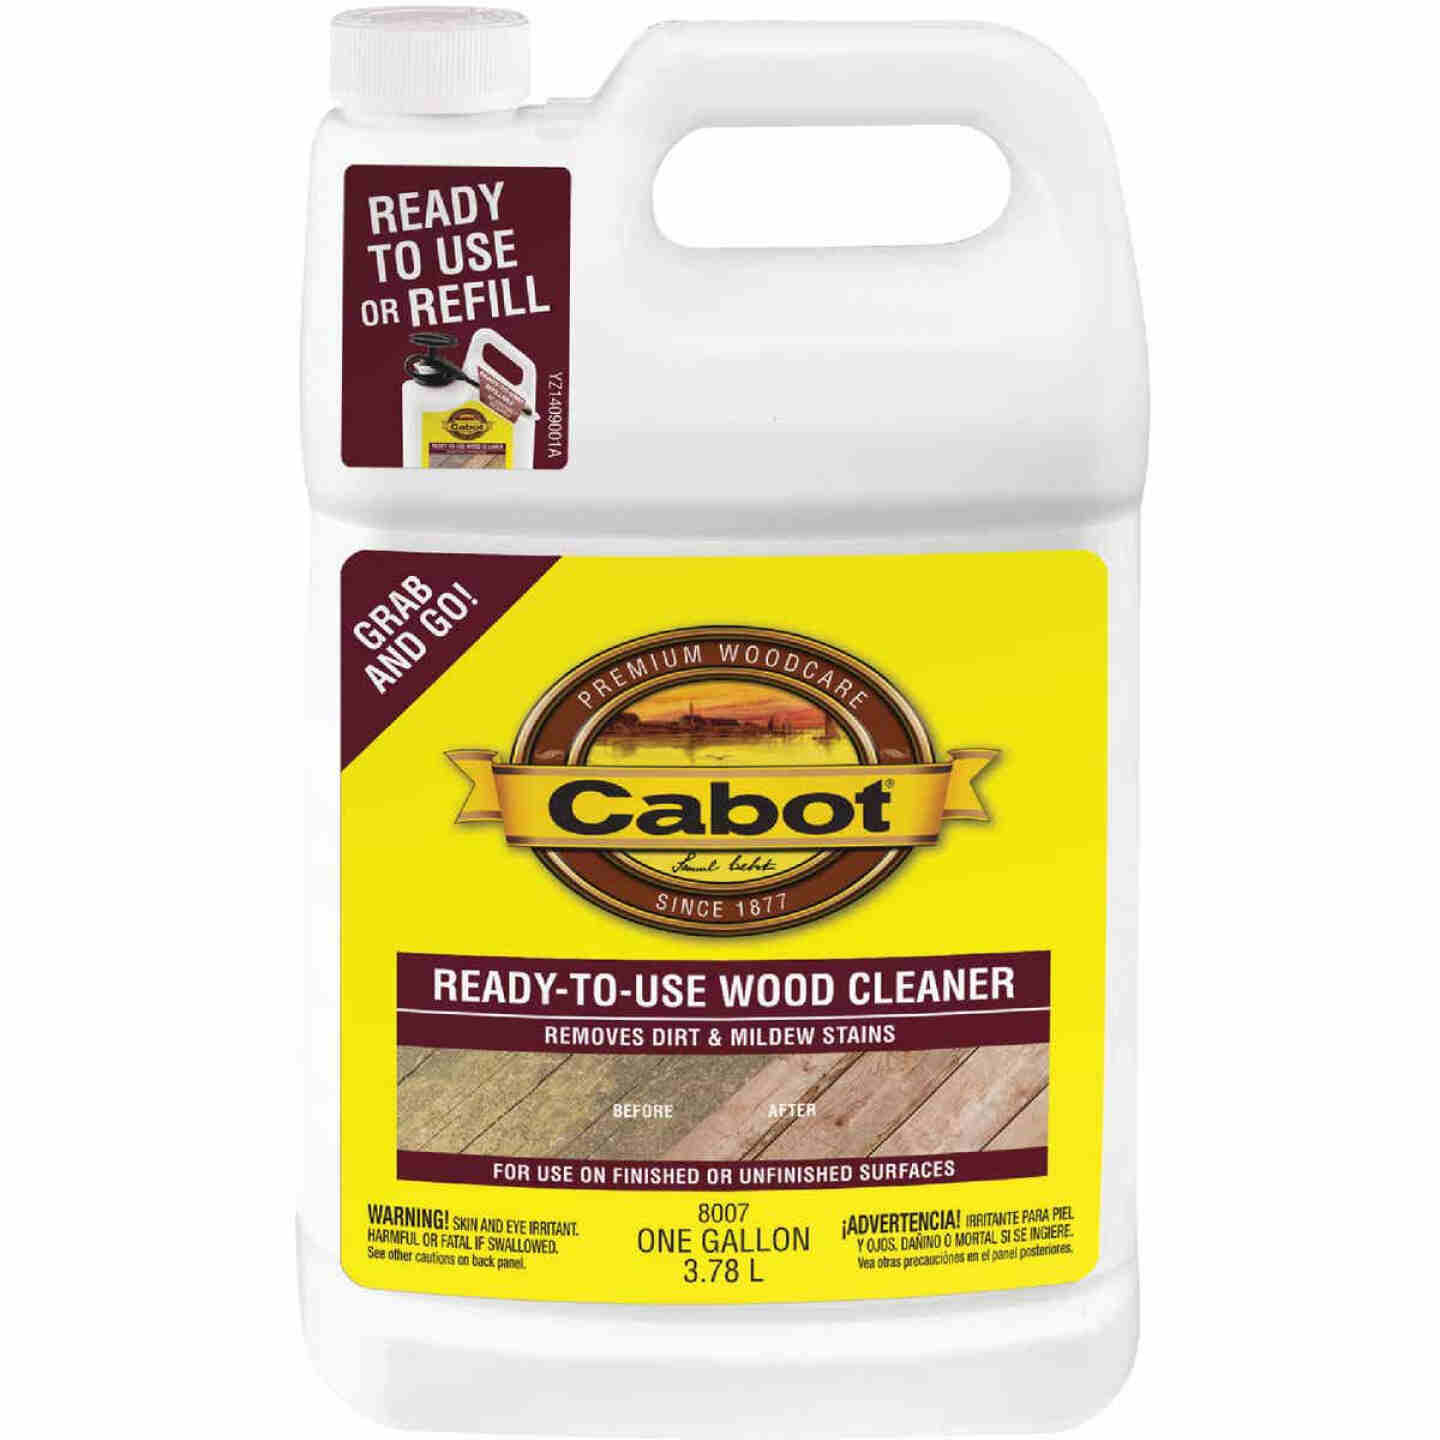 Cabot 1 Gal. Ready-To-Use Wood Cleaner Image 1